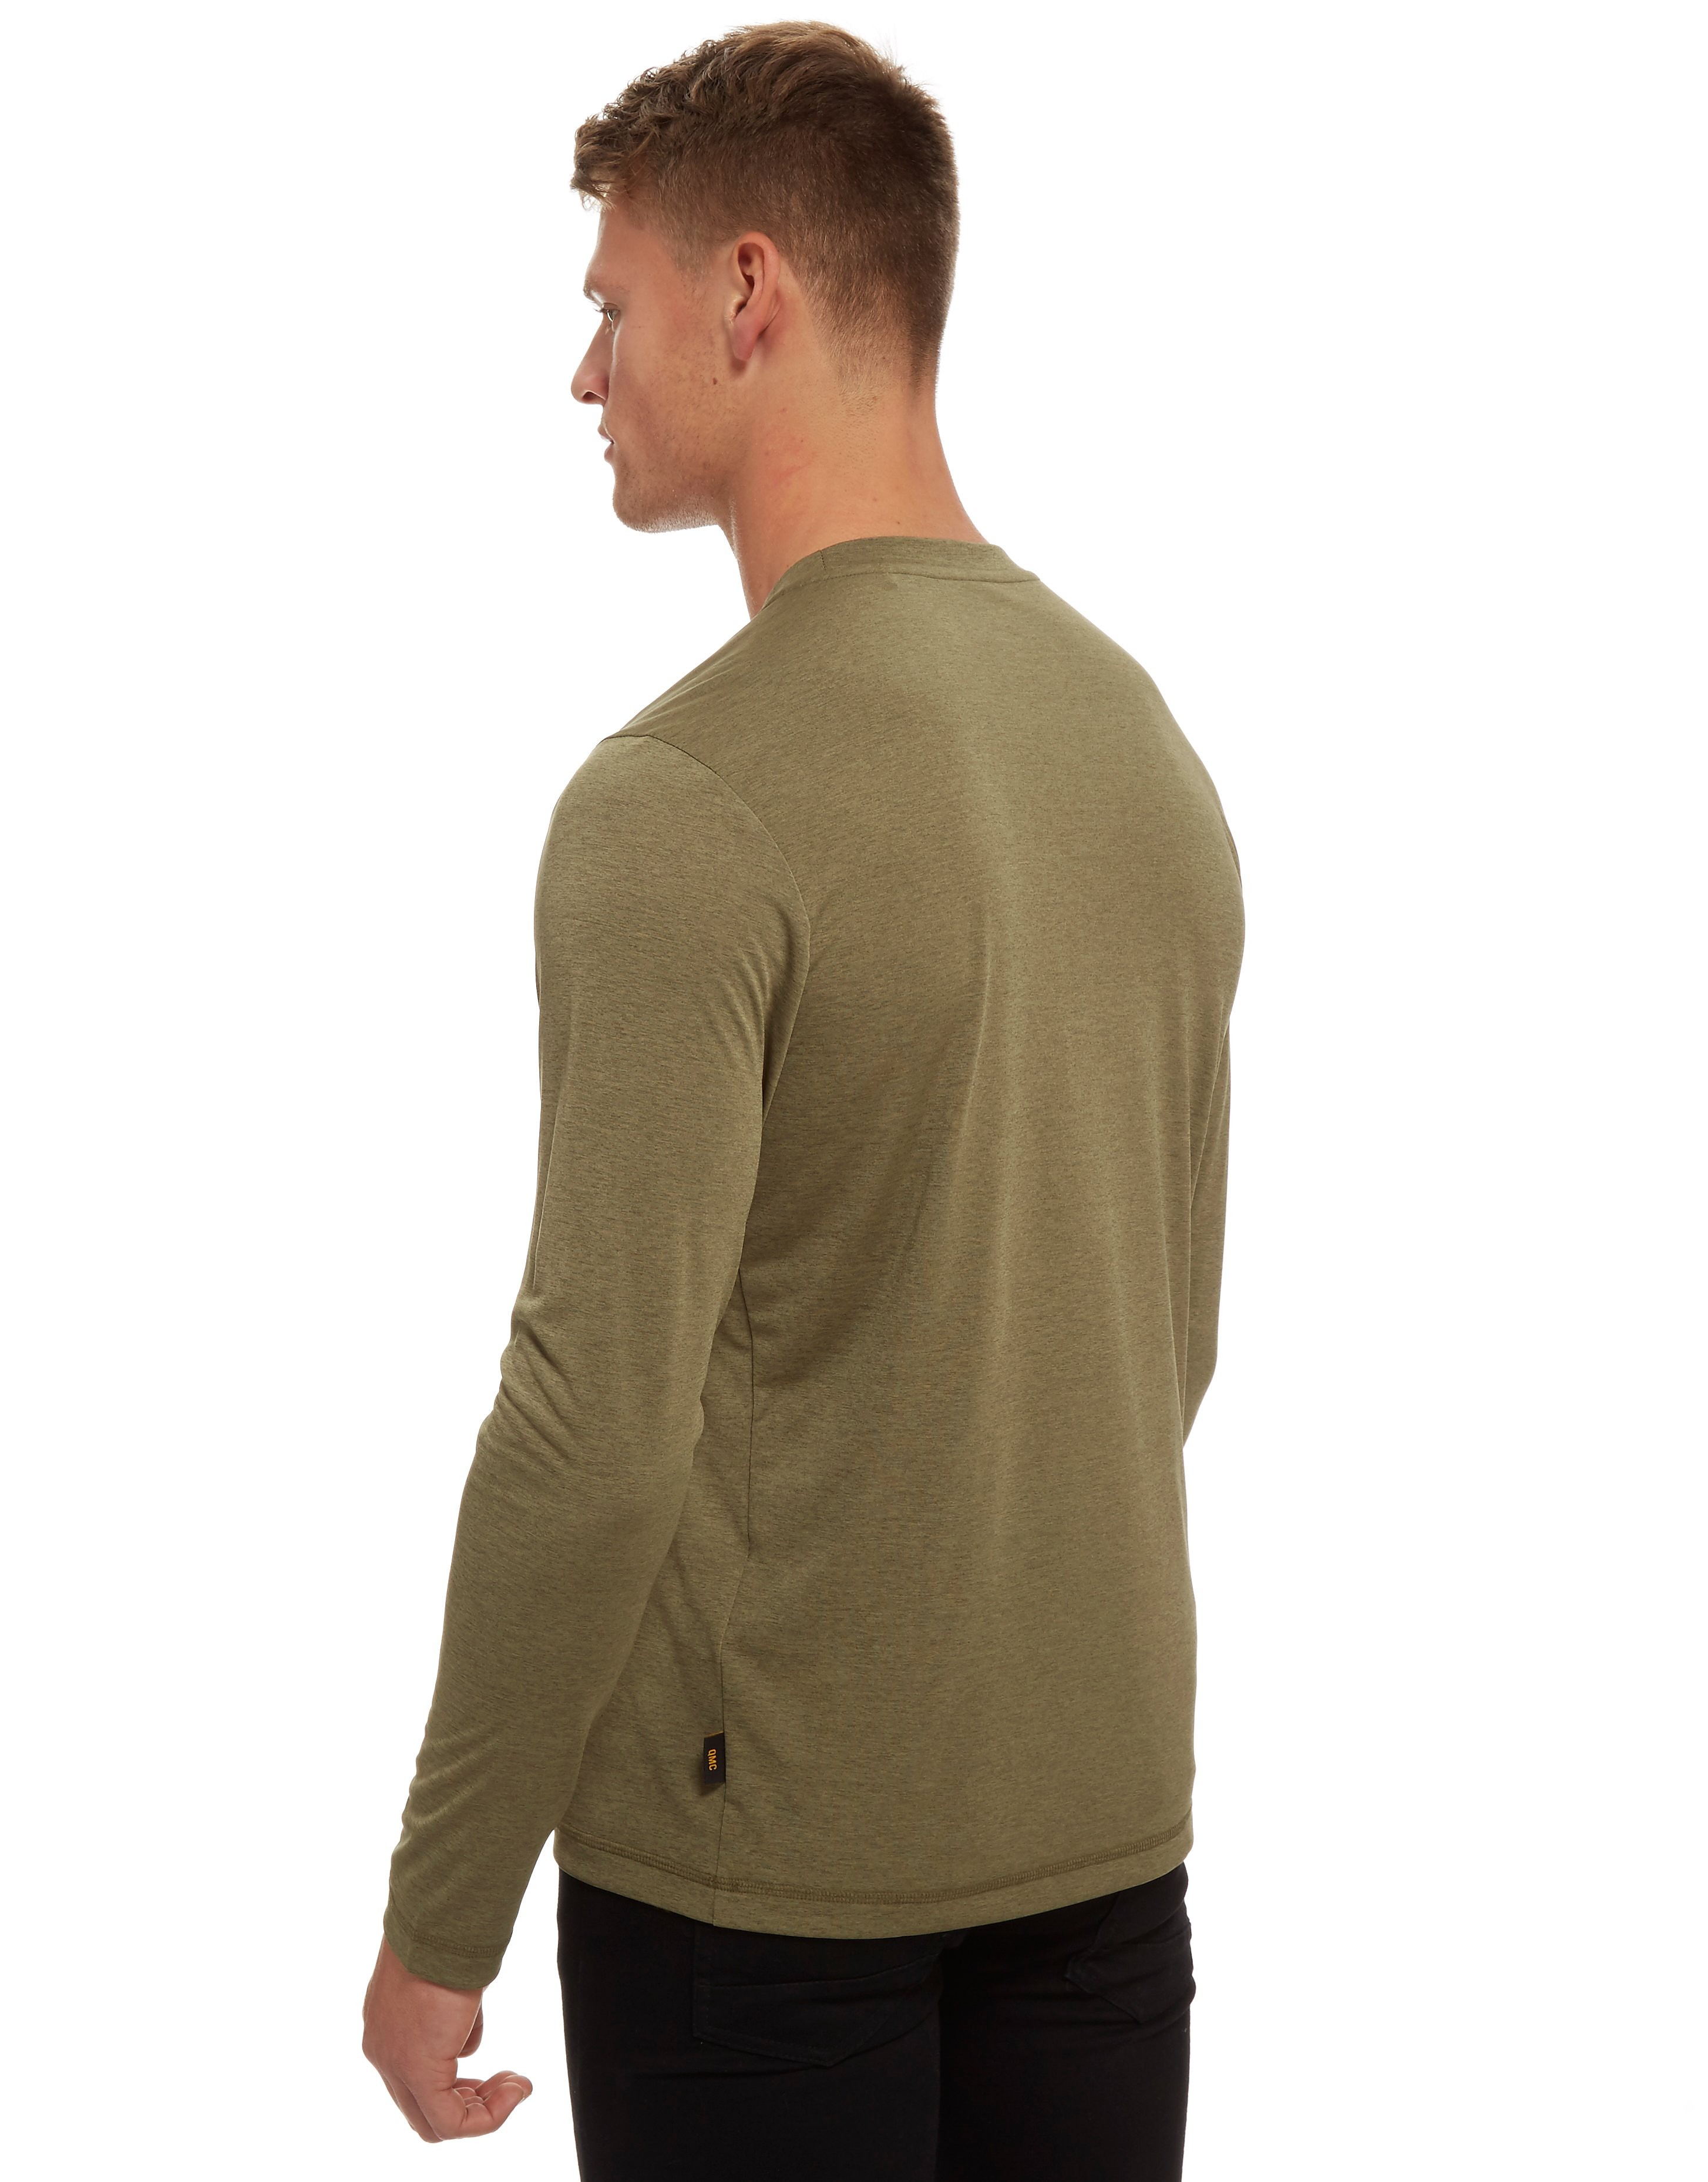 Jack Wolfskin Crosstrail Long Sleeve T-Shirt